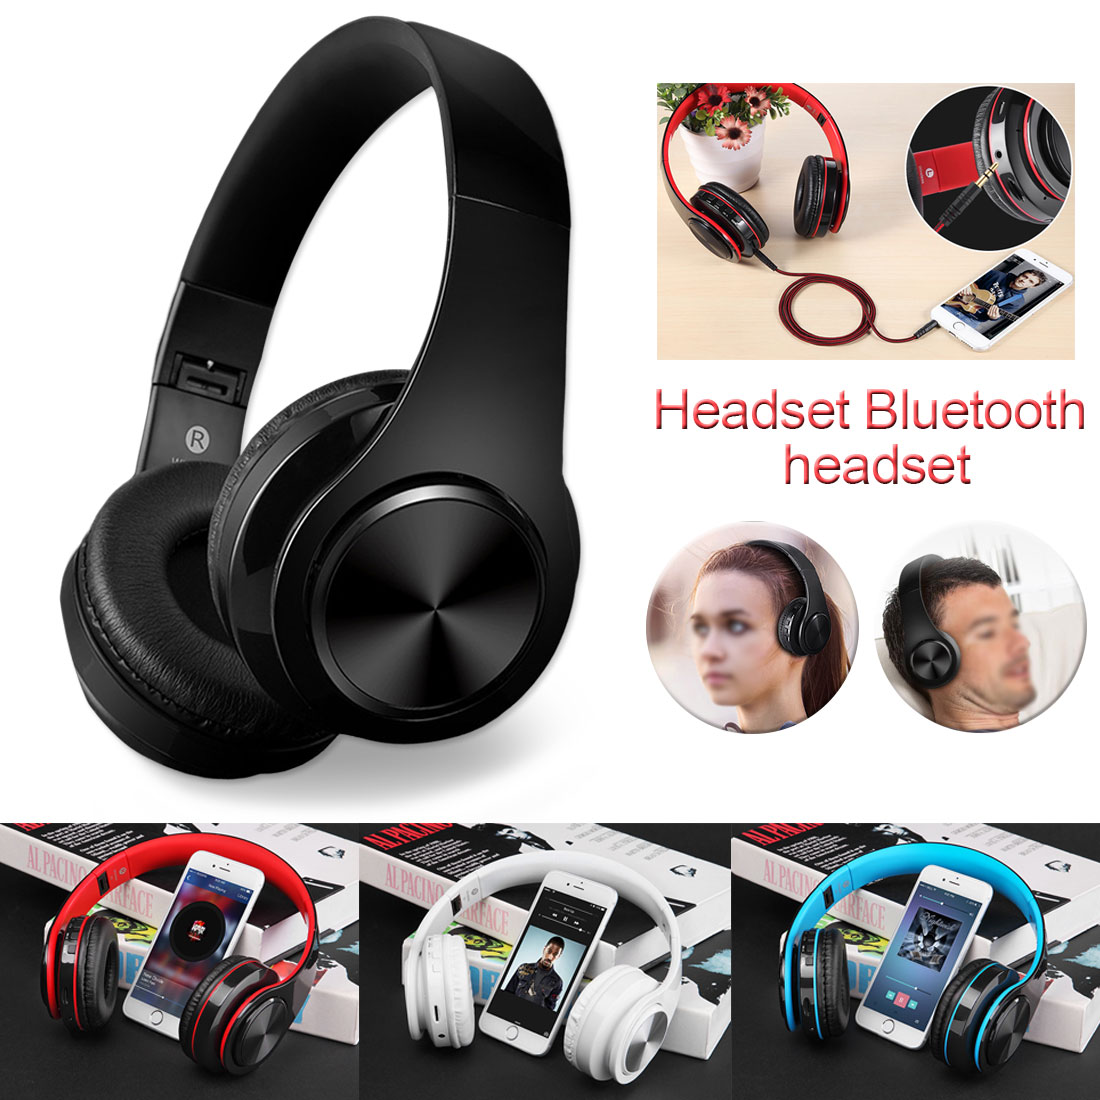 New Bluetooth Wireless Headphones Headset Foldable Headphone Adjustable Earphones With Microphone/TF Card For PC Phone MP3